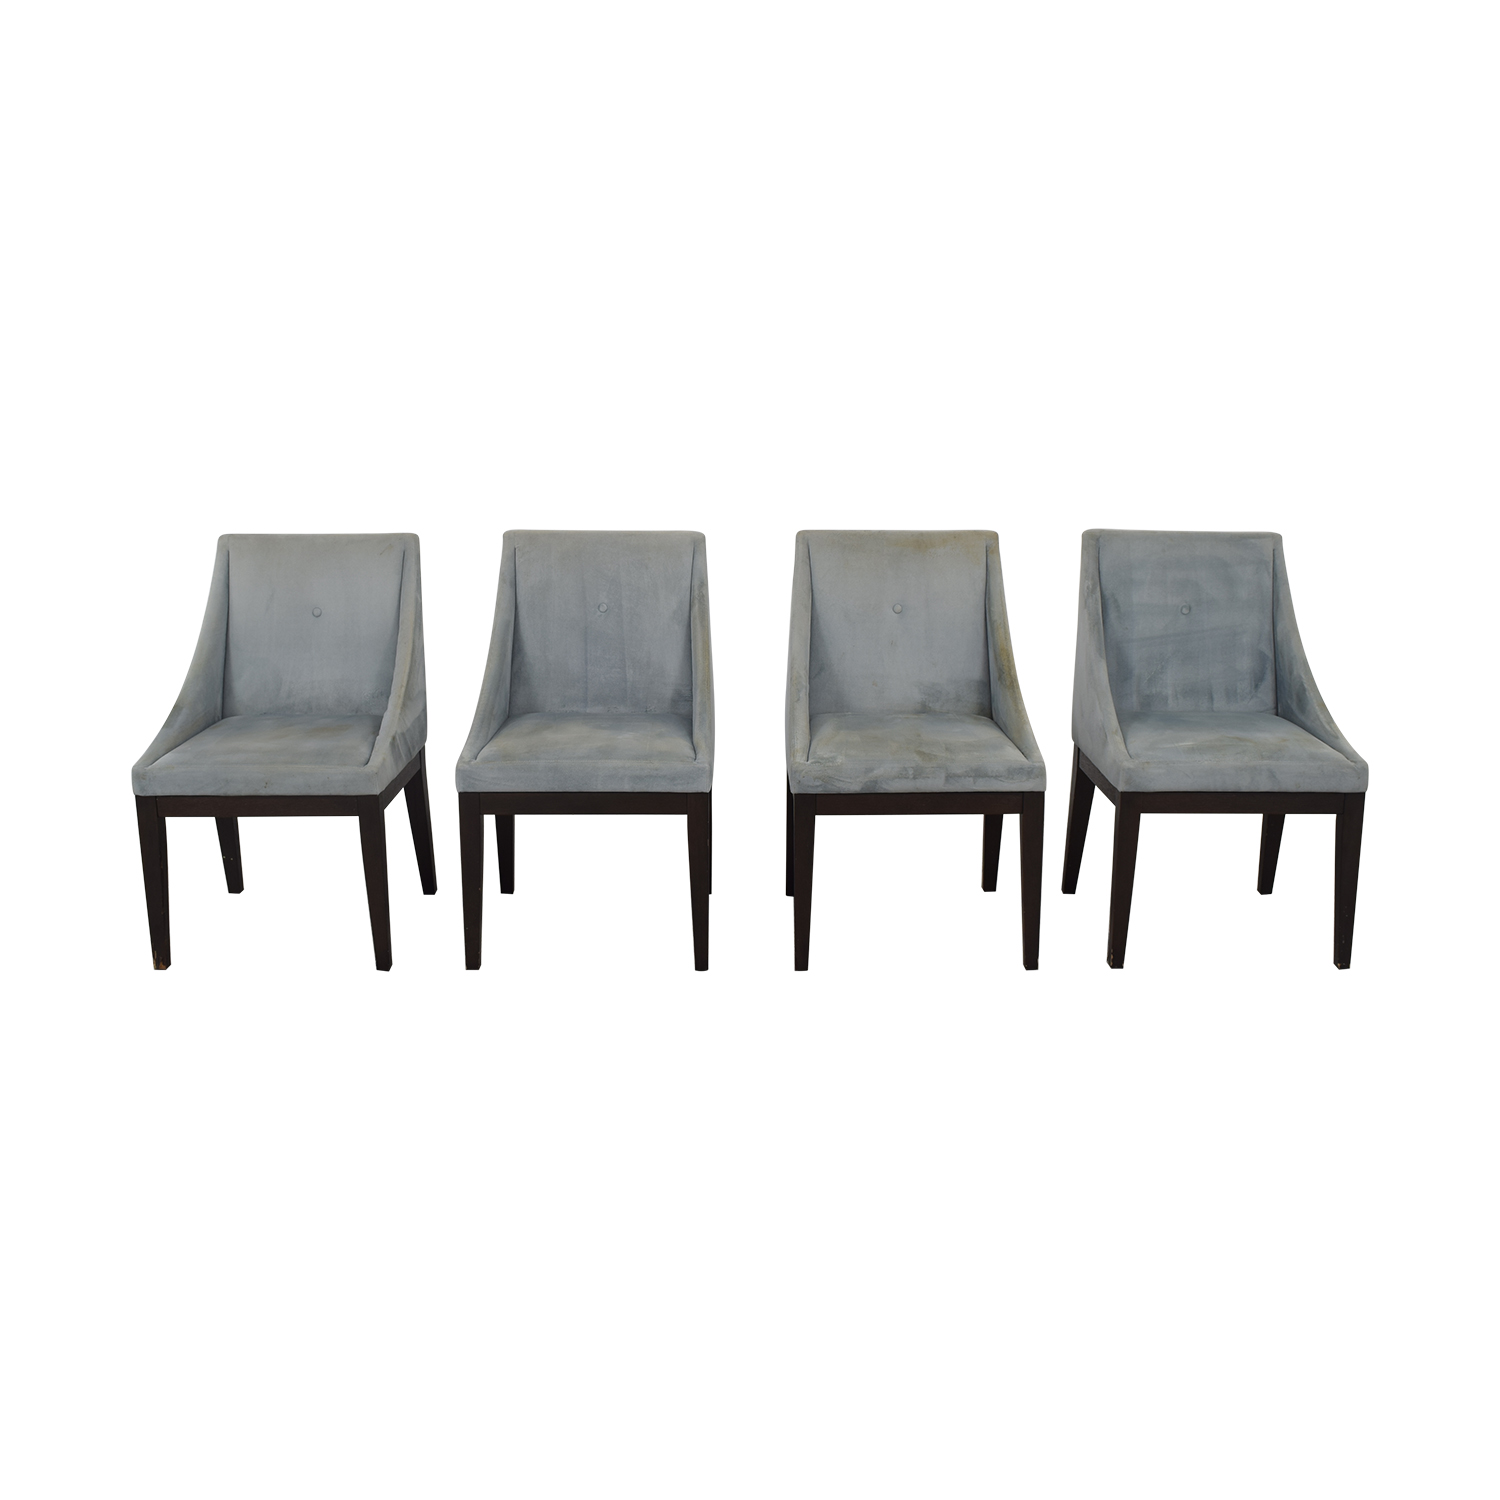 West Elm West Elm Upholstered Dining Chairs on sale